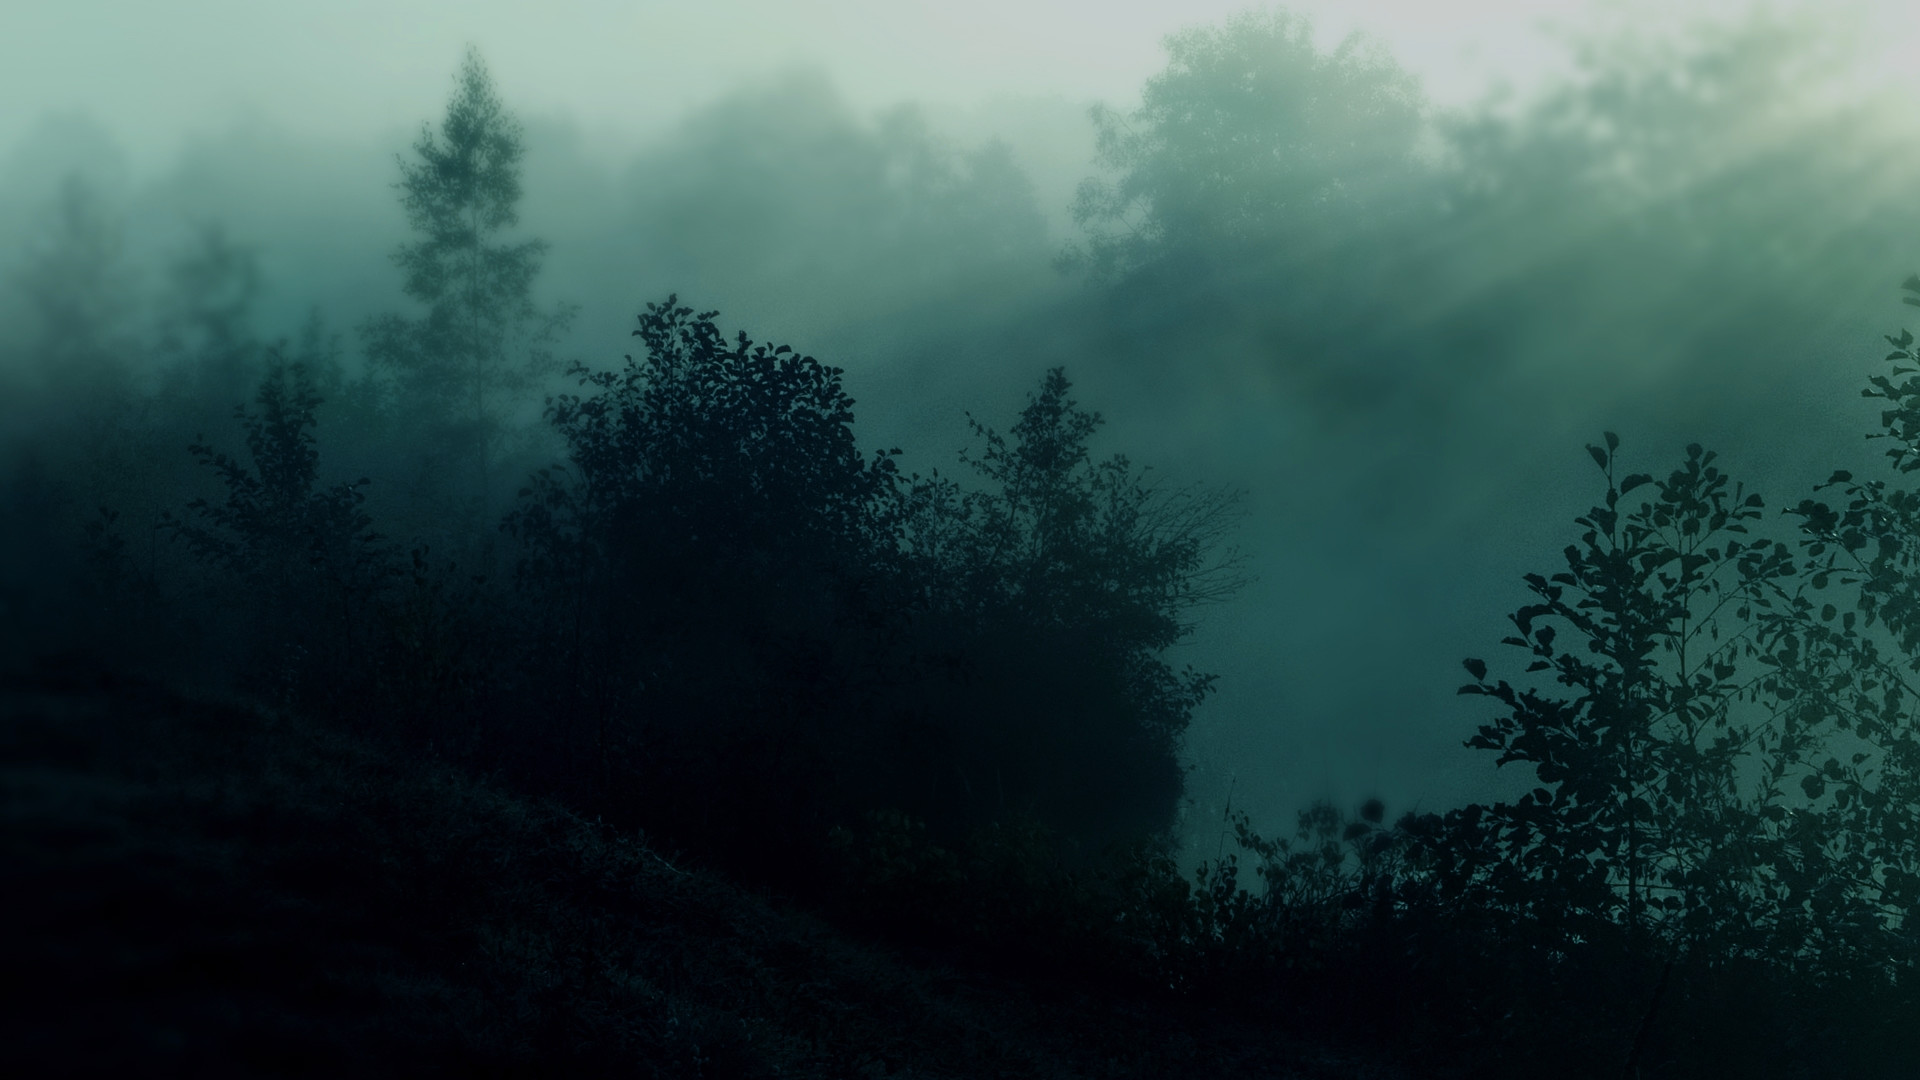 1920x1080 teal wallpapers hd dark forest